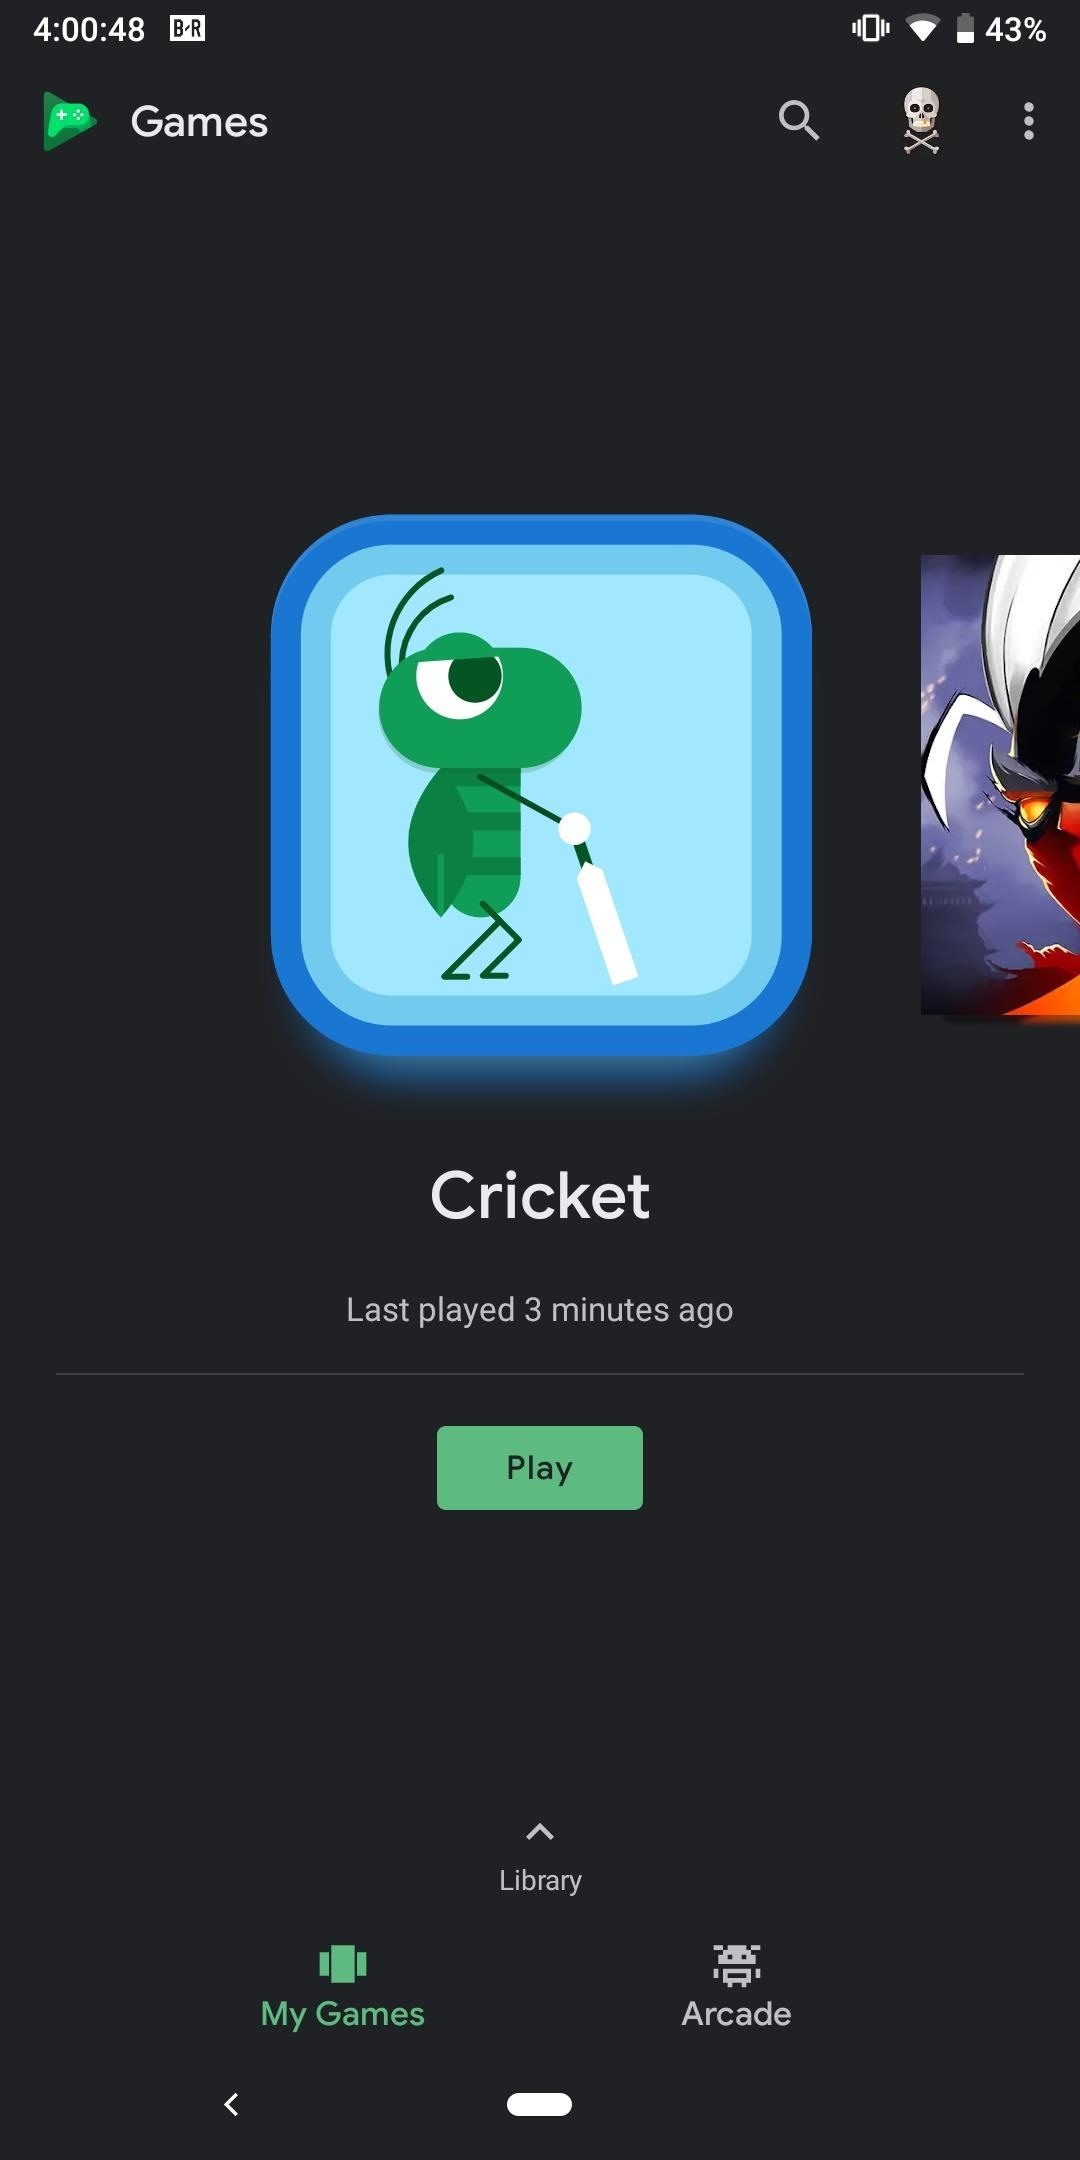 Enabling Dark Mode in Google Play Games